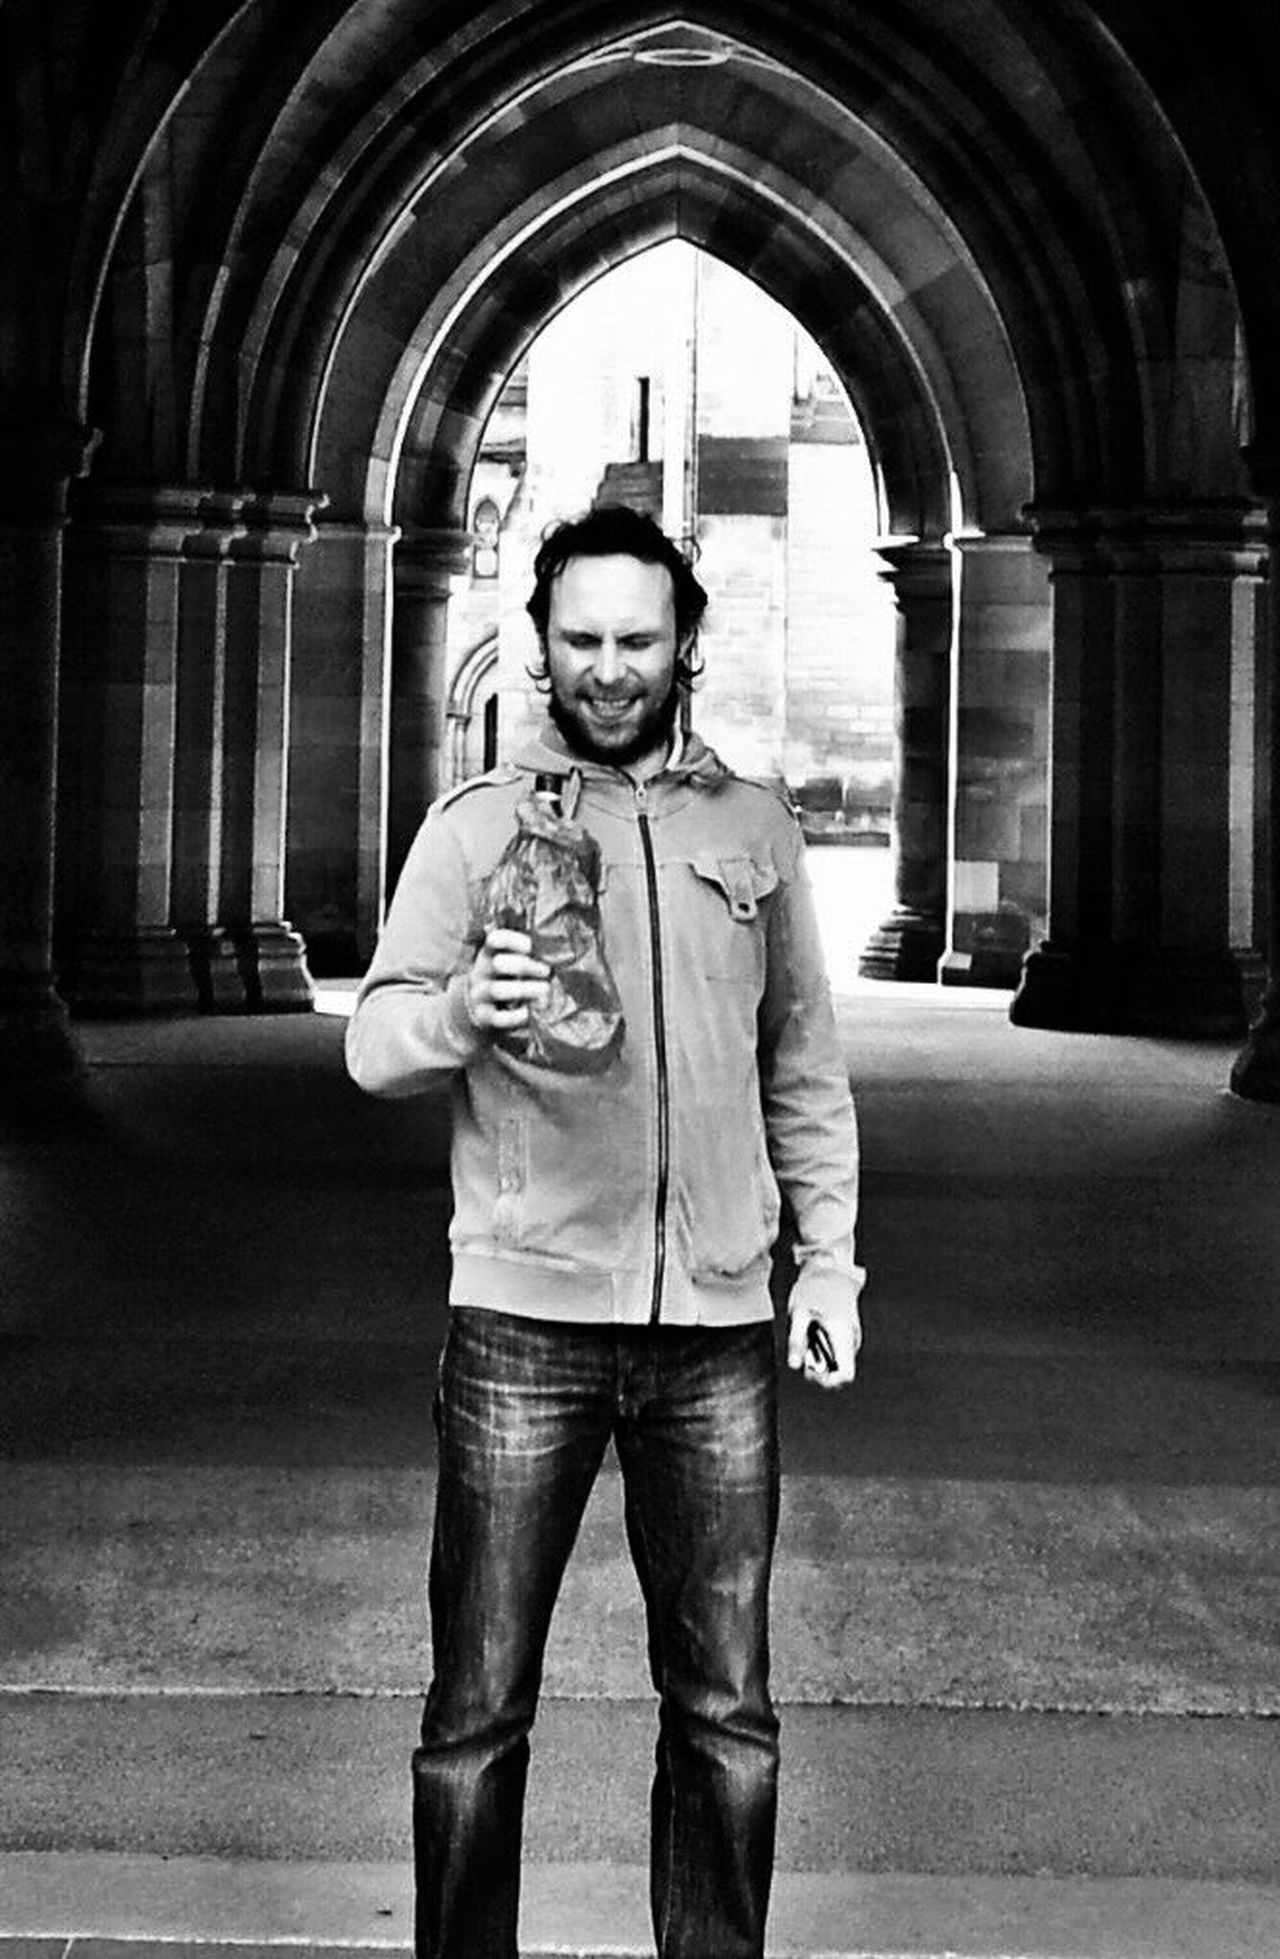 Buckfast Glasgow University Blackandwhite Brown Paper Bag Gothic Arch Daytime Drinking Portrait Of A Man